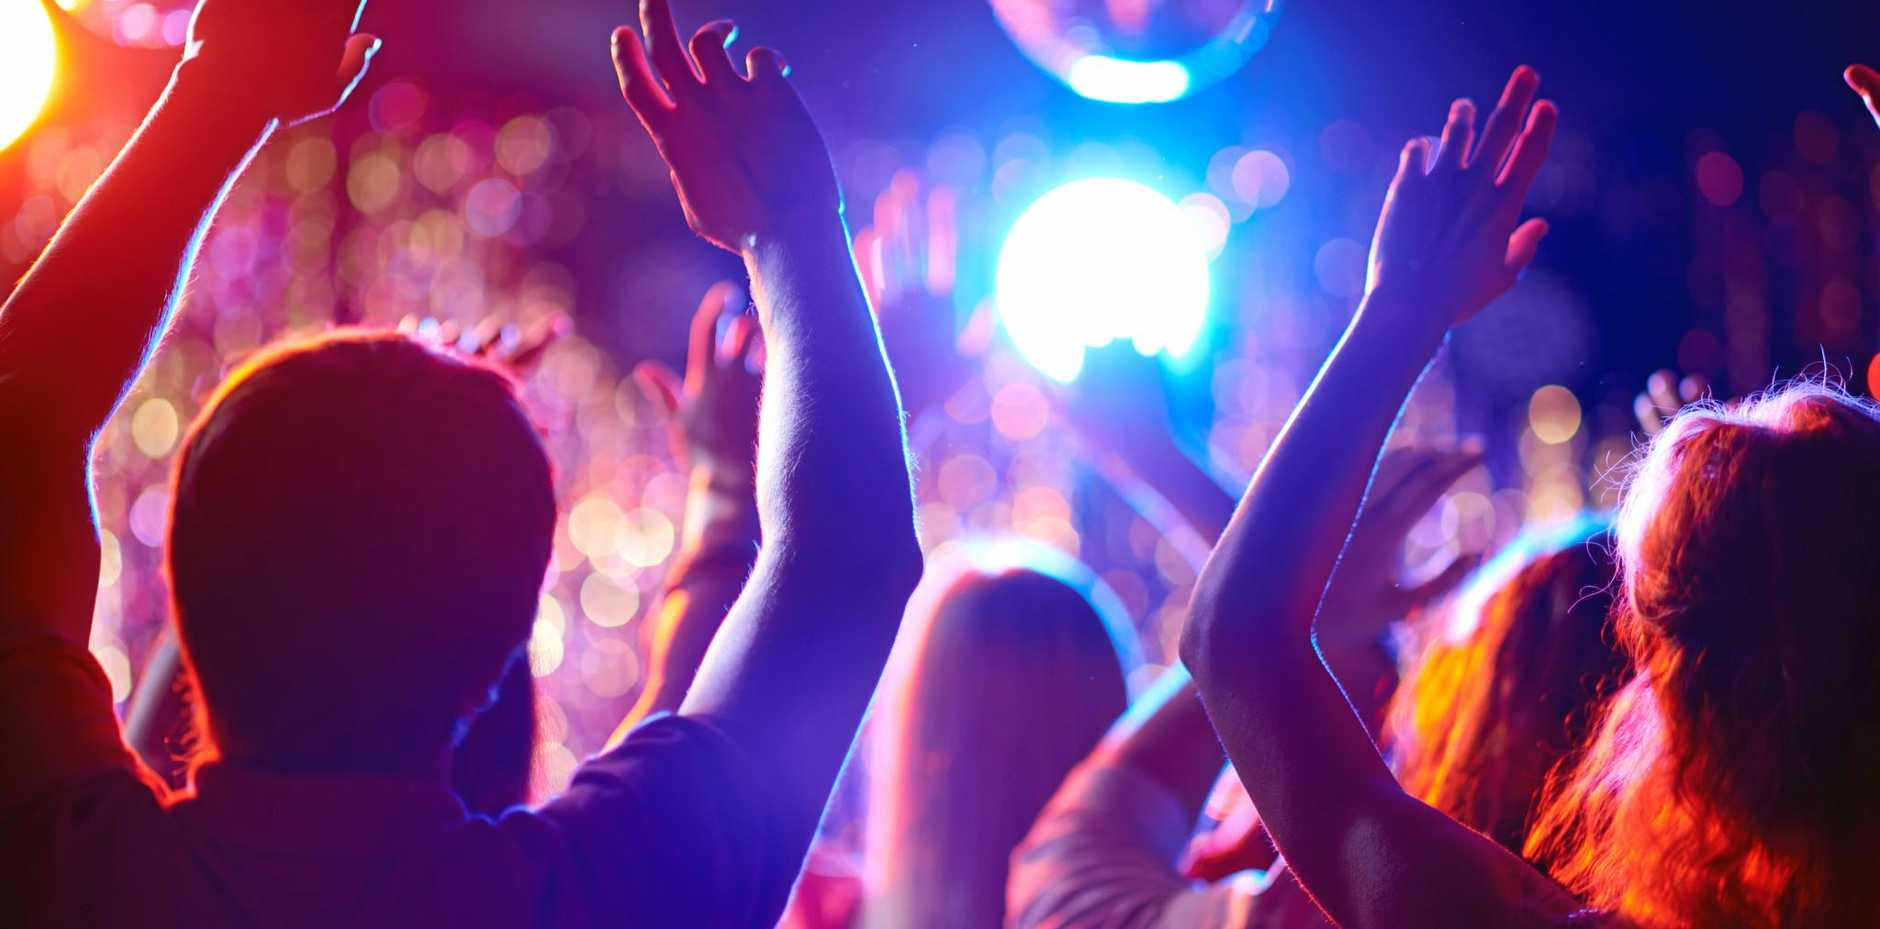 DANGER ZONE: While most people go to nightclubs to have a good time, inevitably the combination of alcohol, drugs and big personalities can make them a dangerous place.